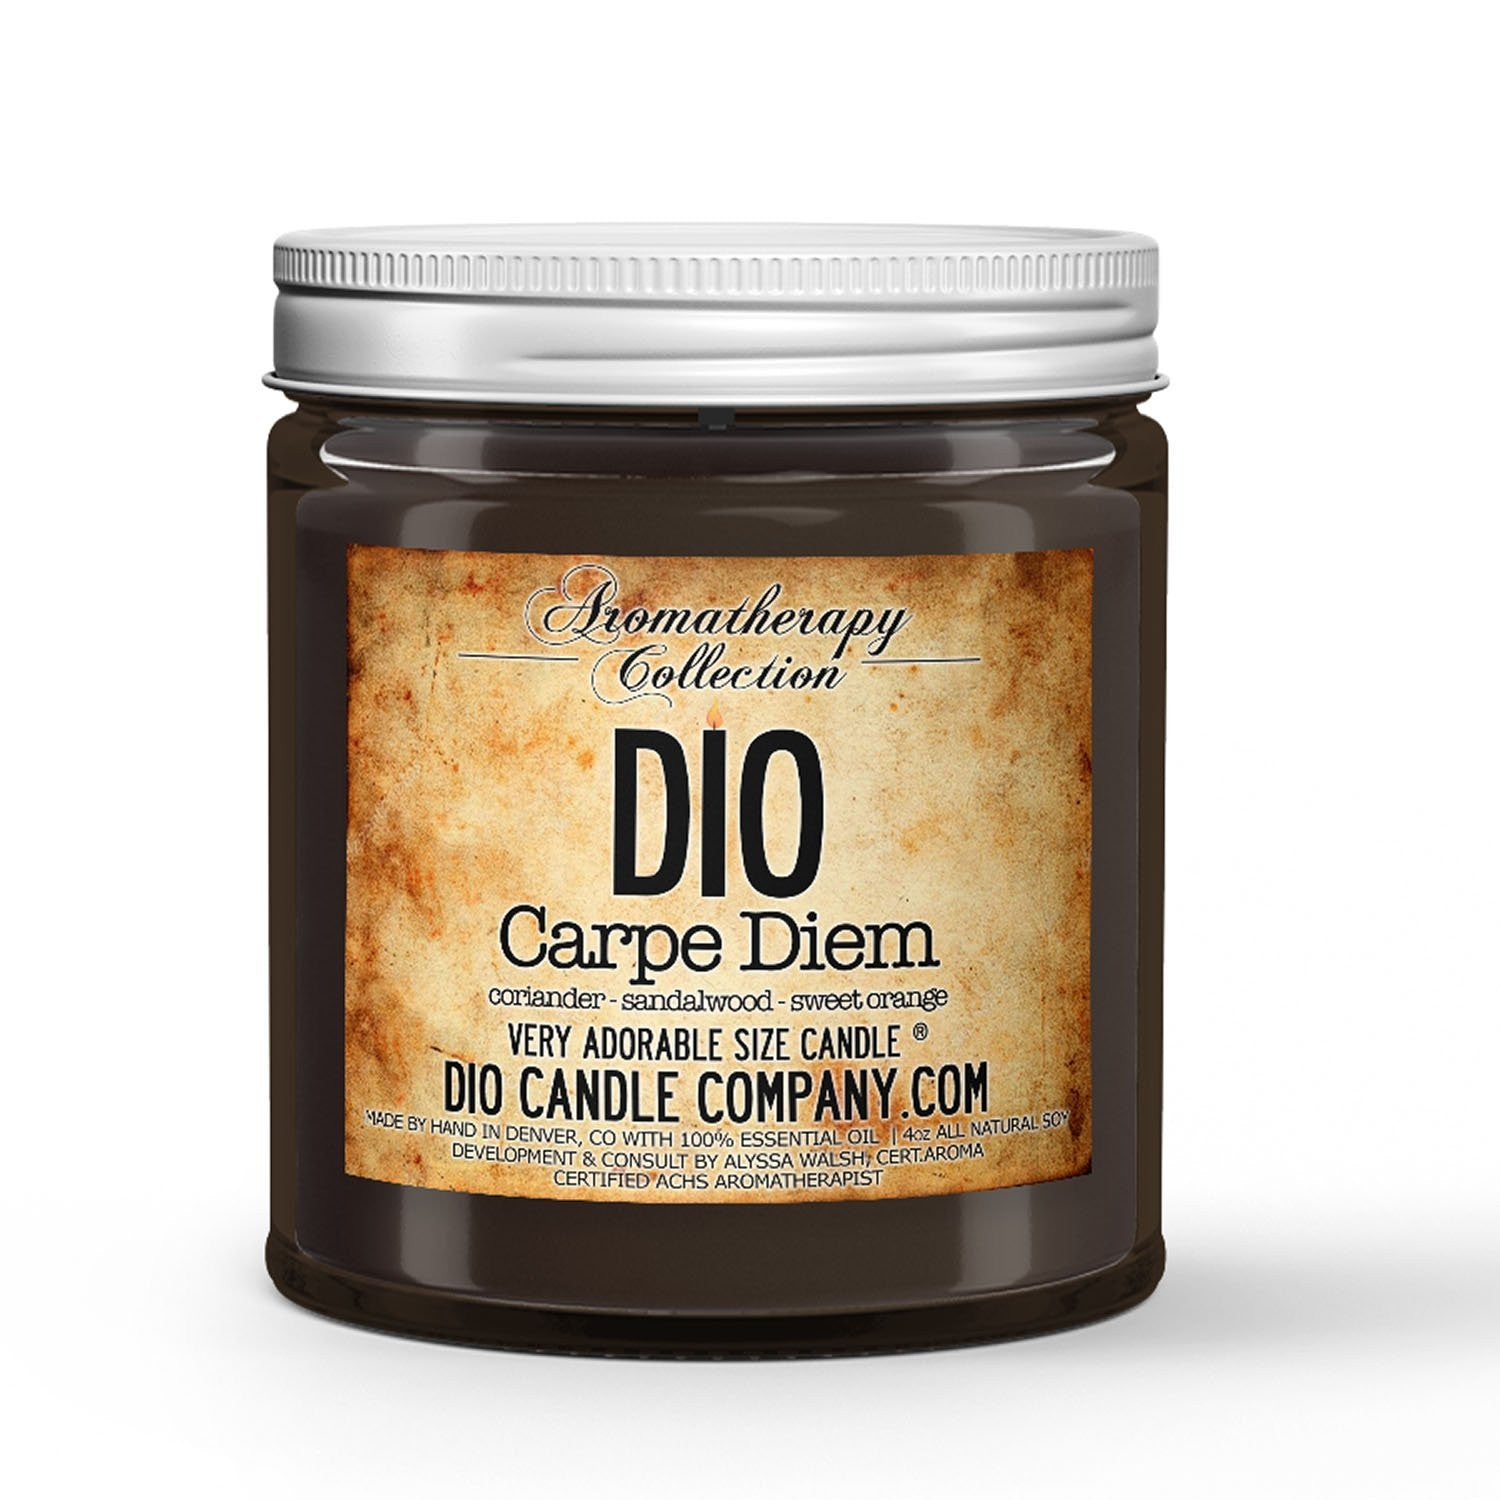 Carpe Diem Aromatherapy Candle Coriander - Sandalwood - Sweet Orange Scented - Dio Candle Company